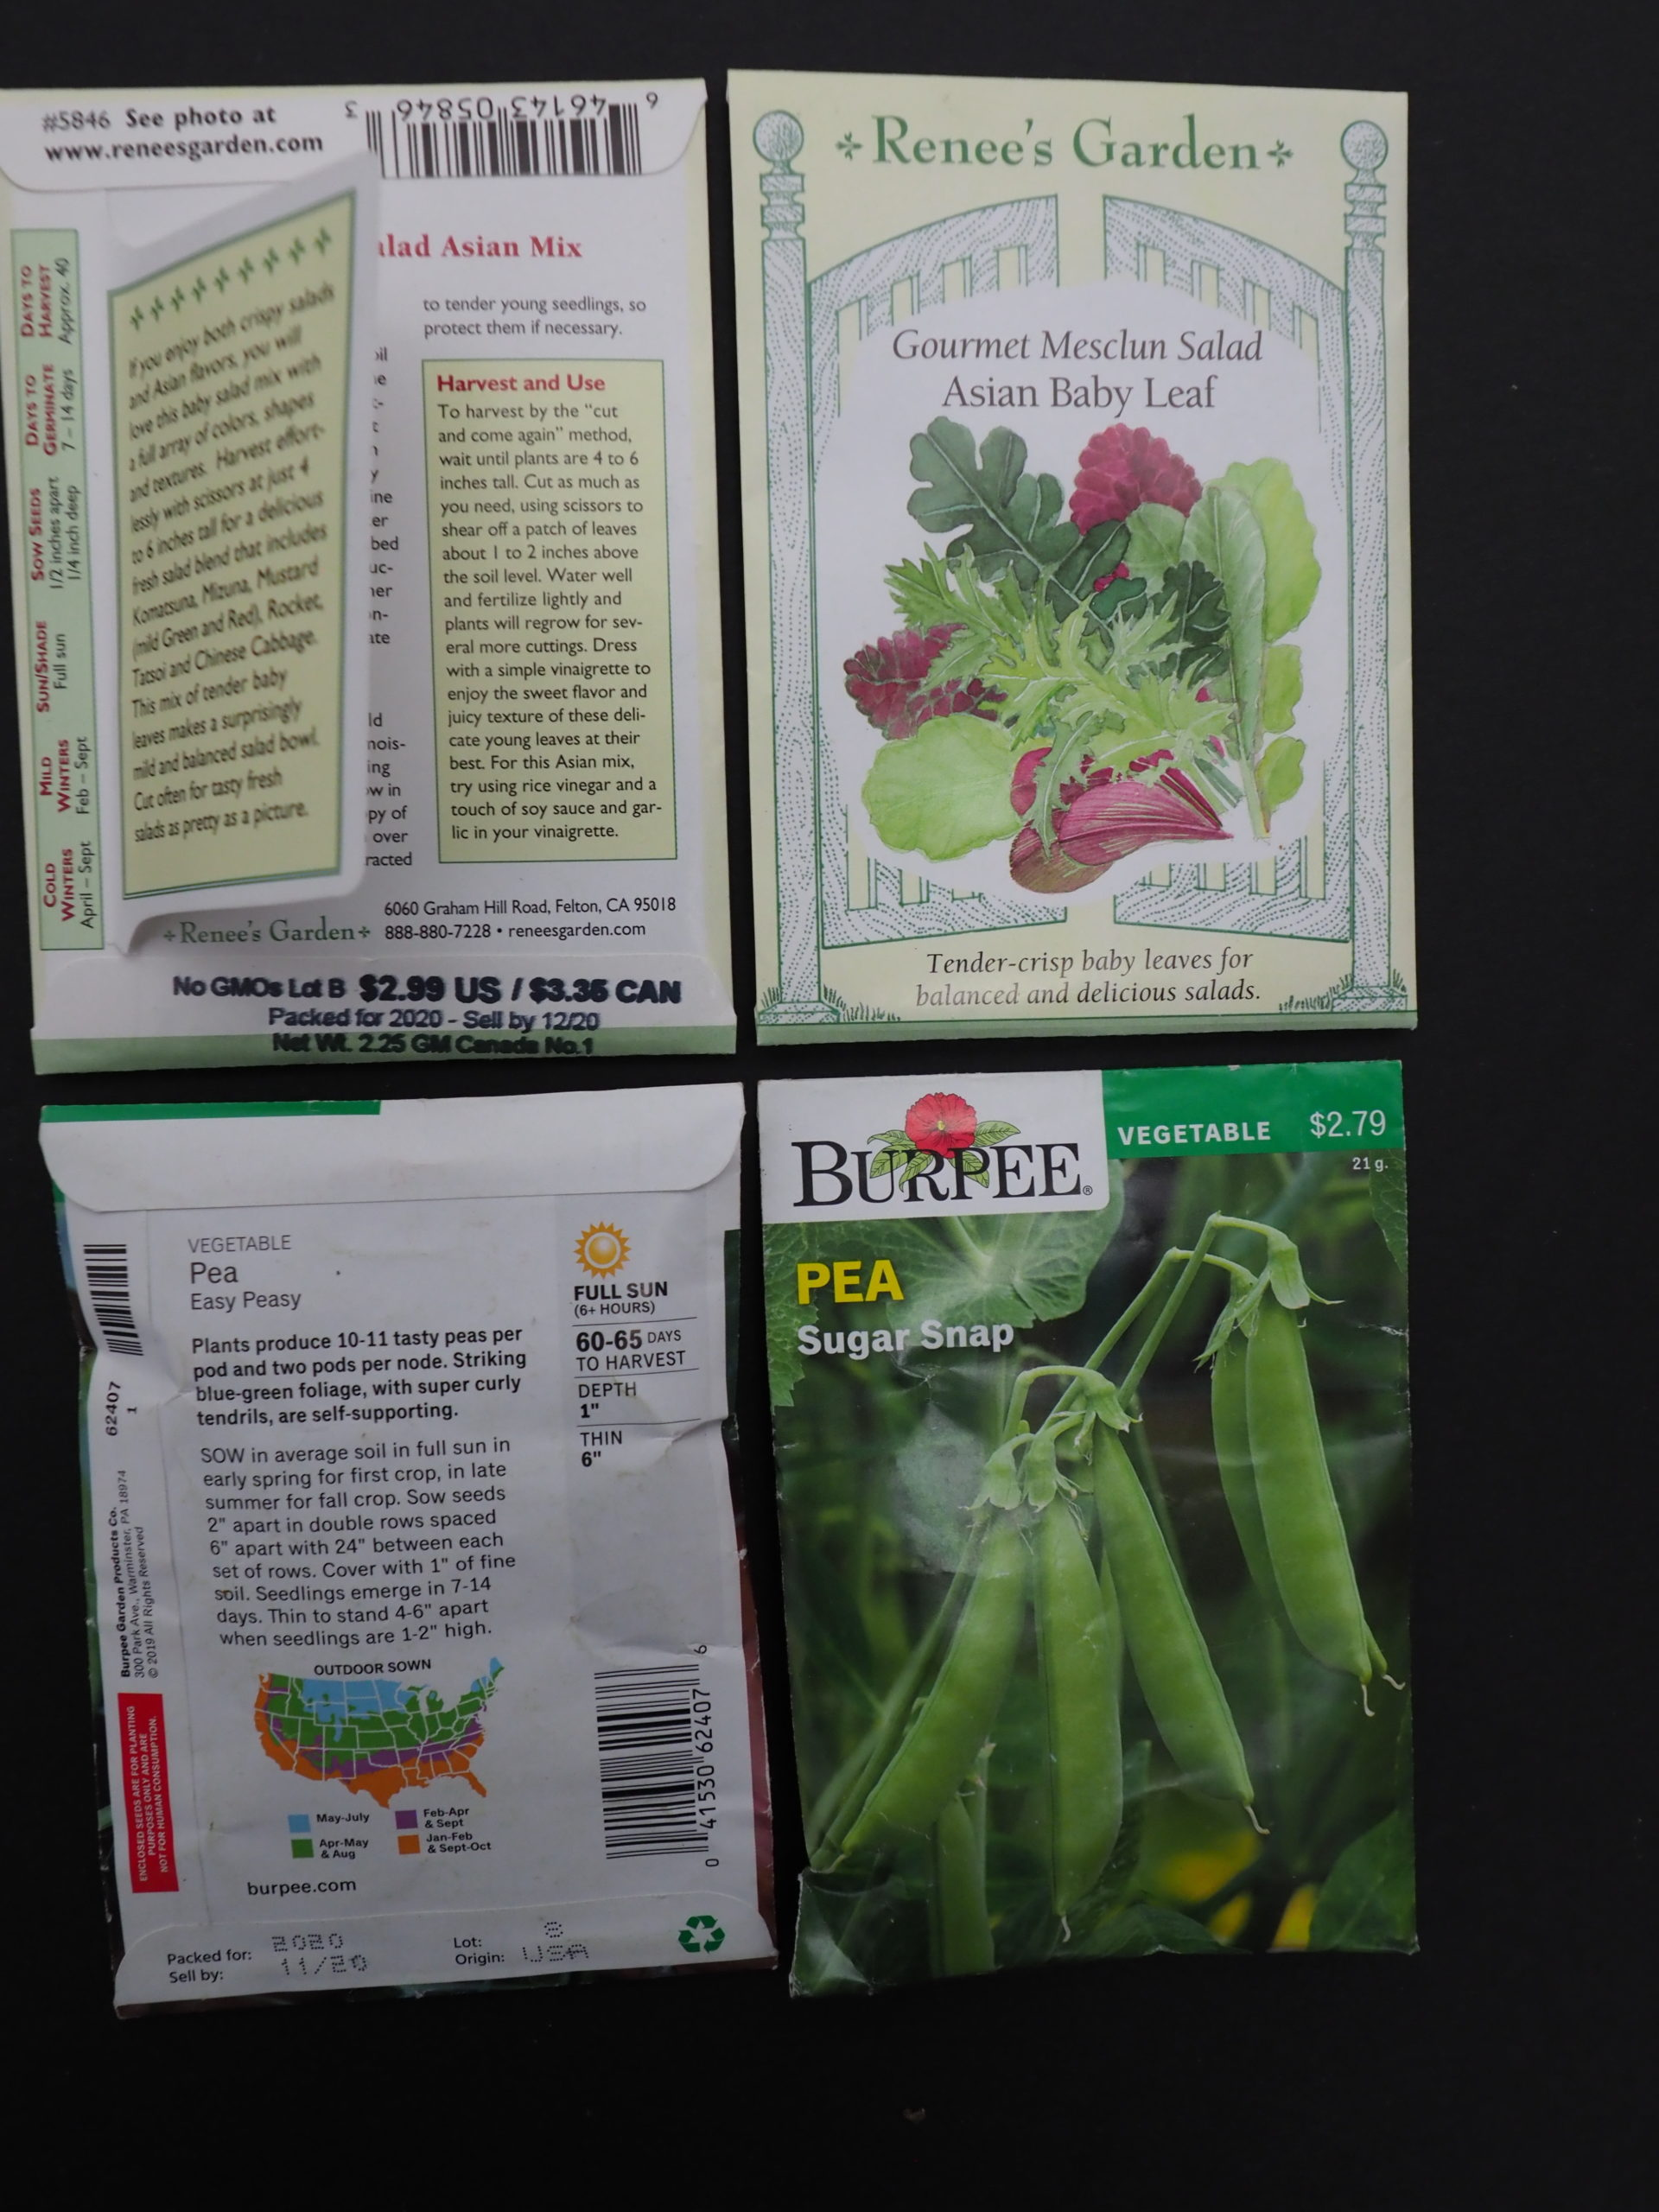 Renee's seed packets (top) have three distinct text sections about the seed in the packet and the packet artwork is visually appealing. The information on the left (long) side includes both germination and days to harvest.  The Burpee seed packets offer much less for the new or inquisitive gardener.